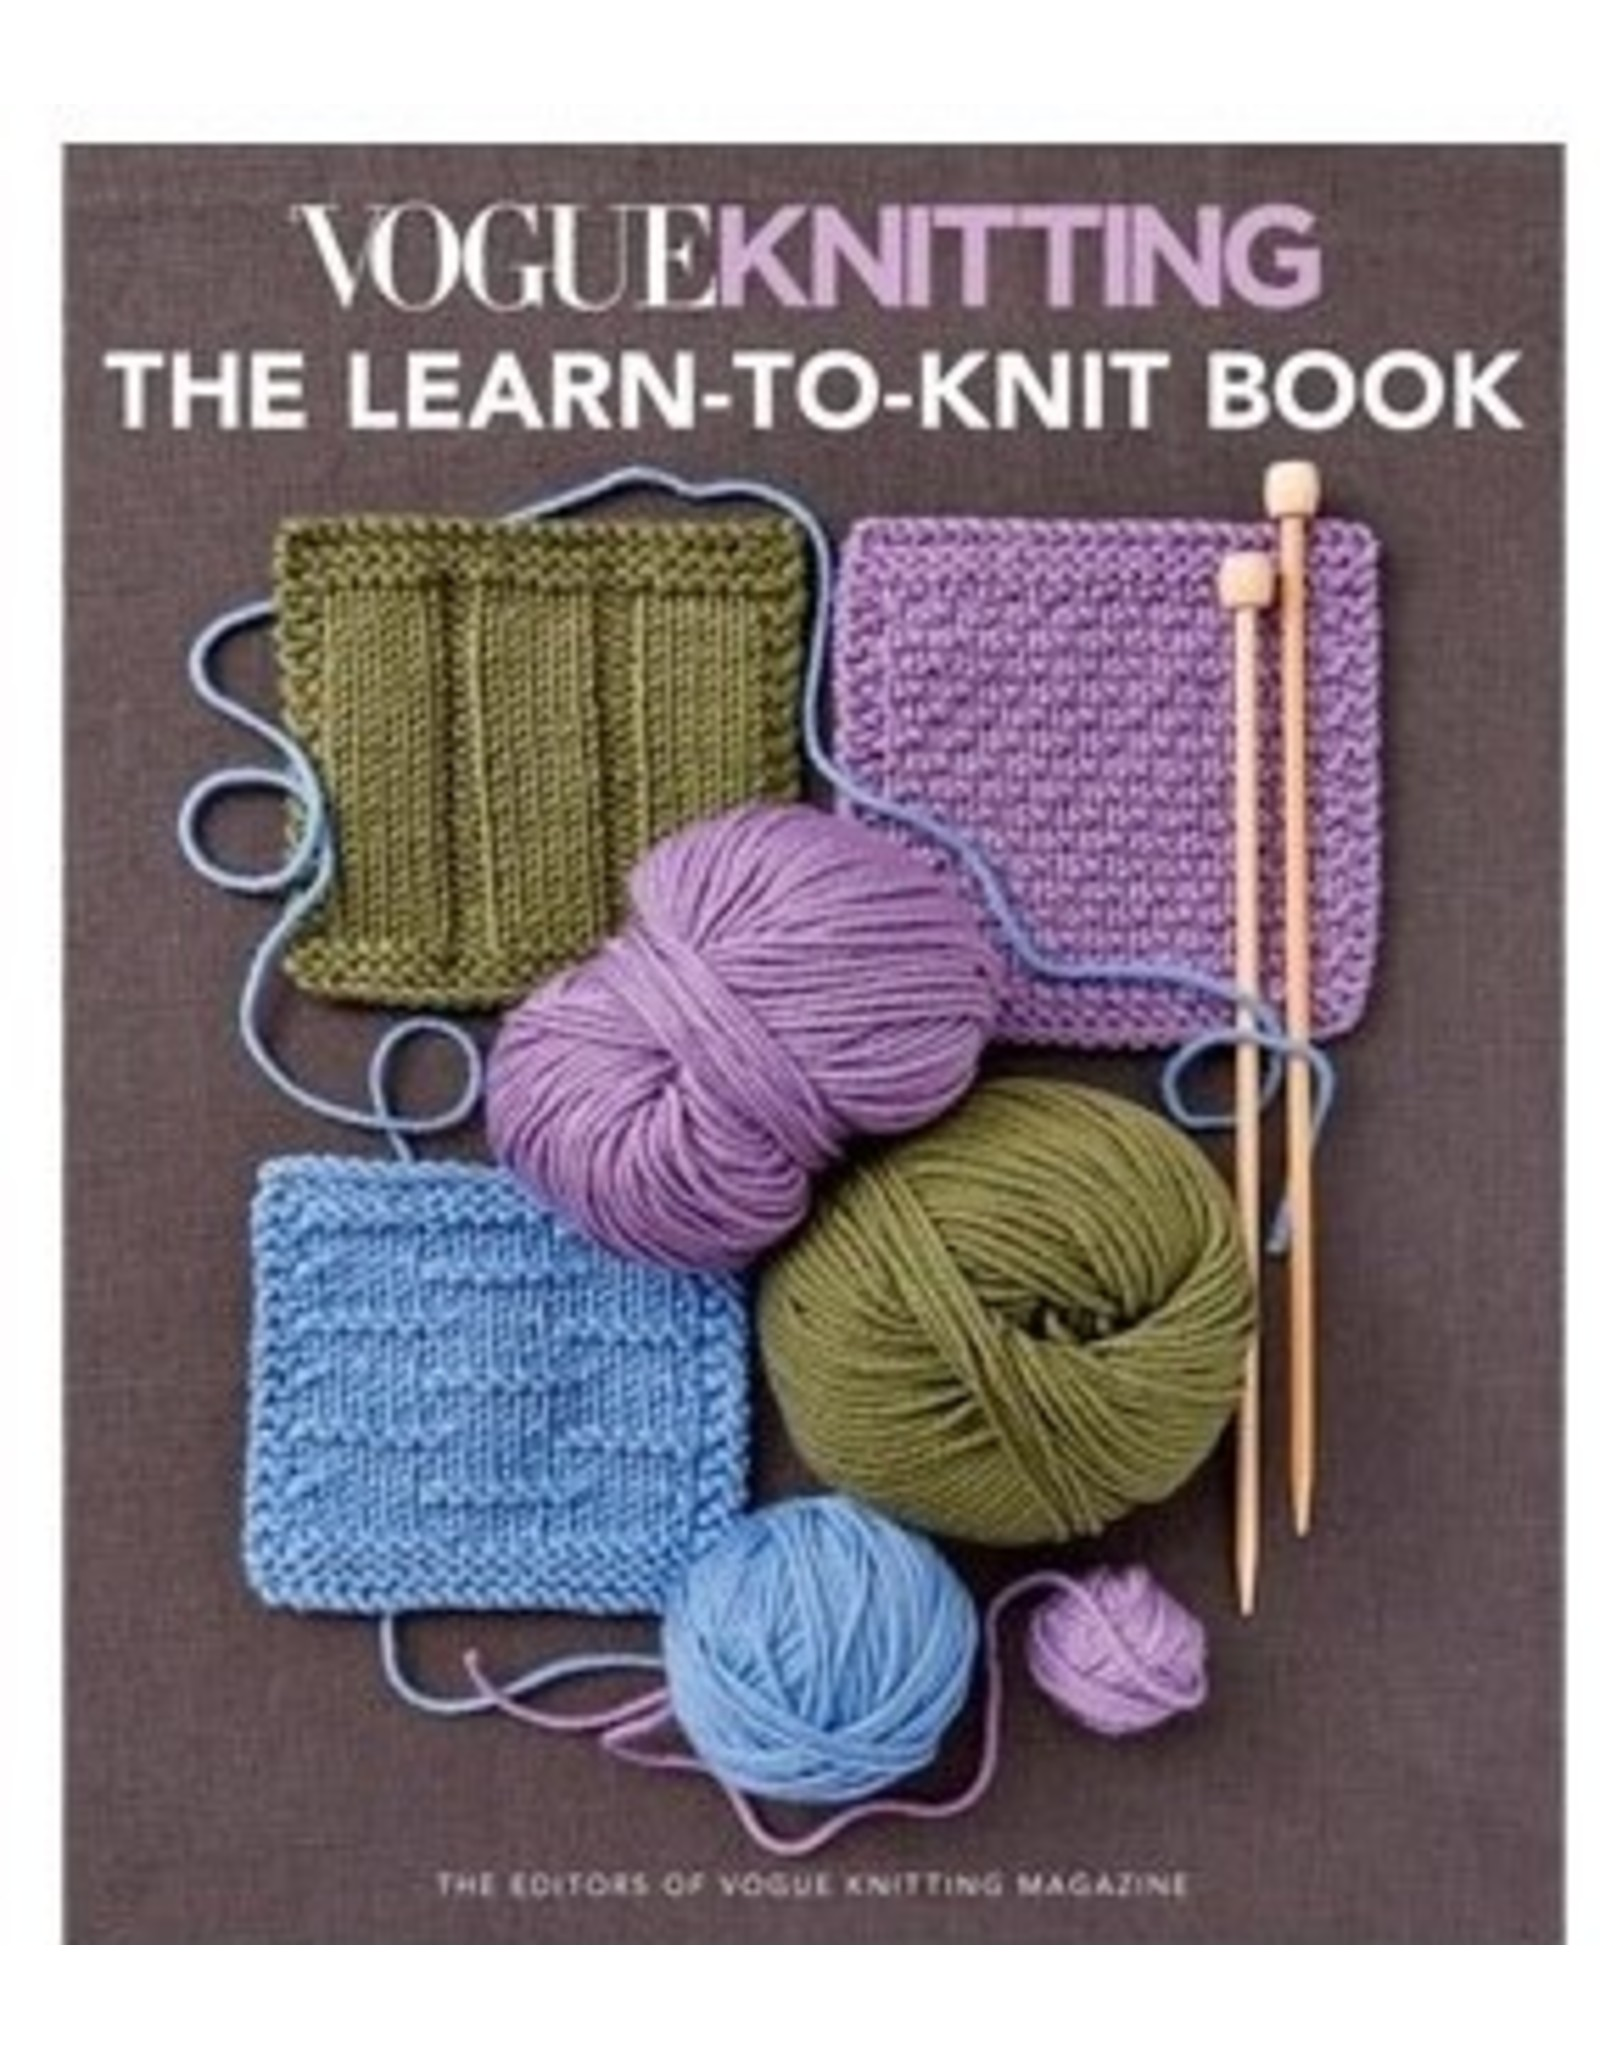 The Learn to Knit Book - Vogue Knitting